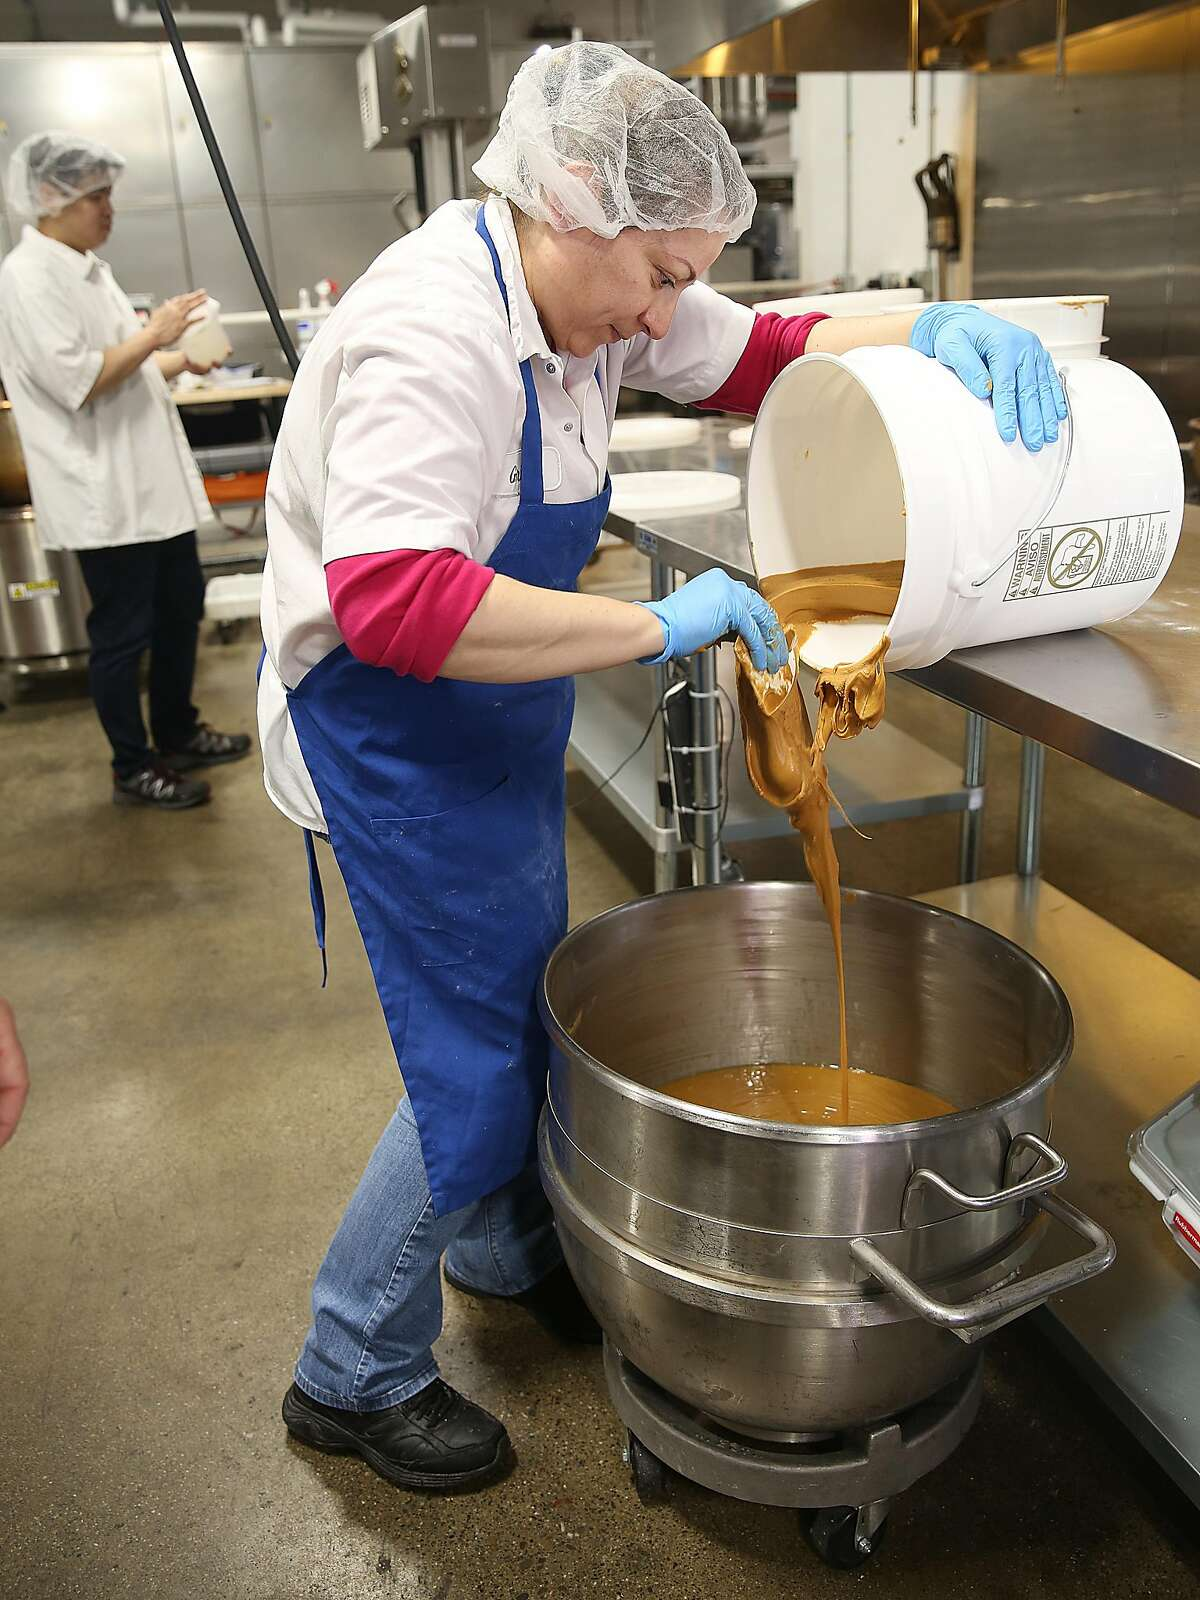 Peanut-butter filling being made at Ocho candy factory.